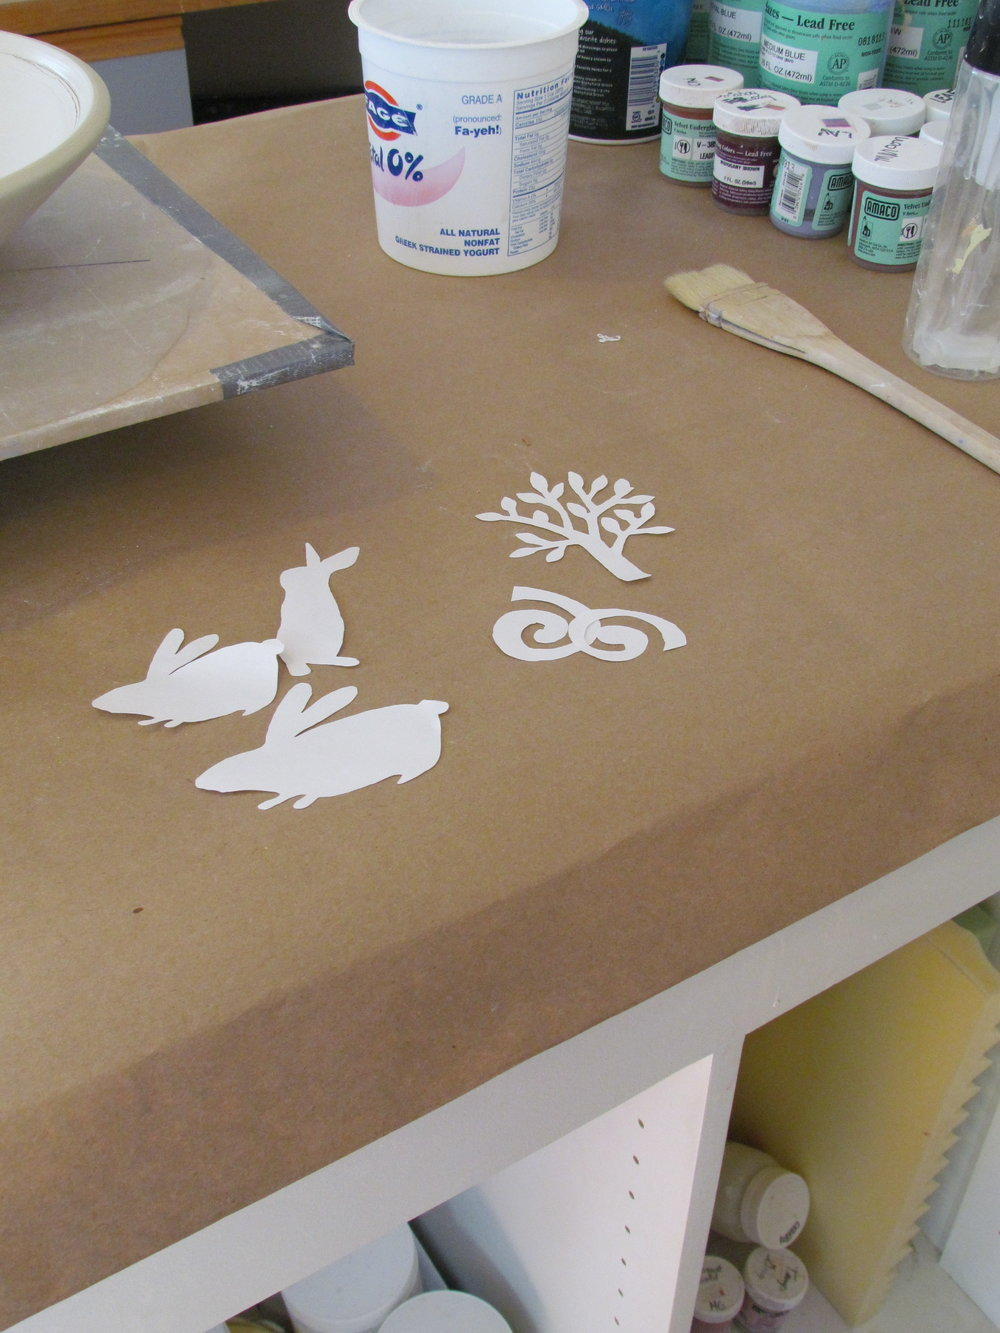 The process I have been using lately to decorate the surface of my pieces involves the use of paper stencils. I create an image and cut multiple copies of this image out of paper to create  stencils.